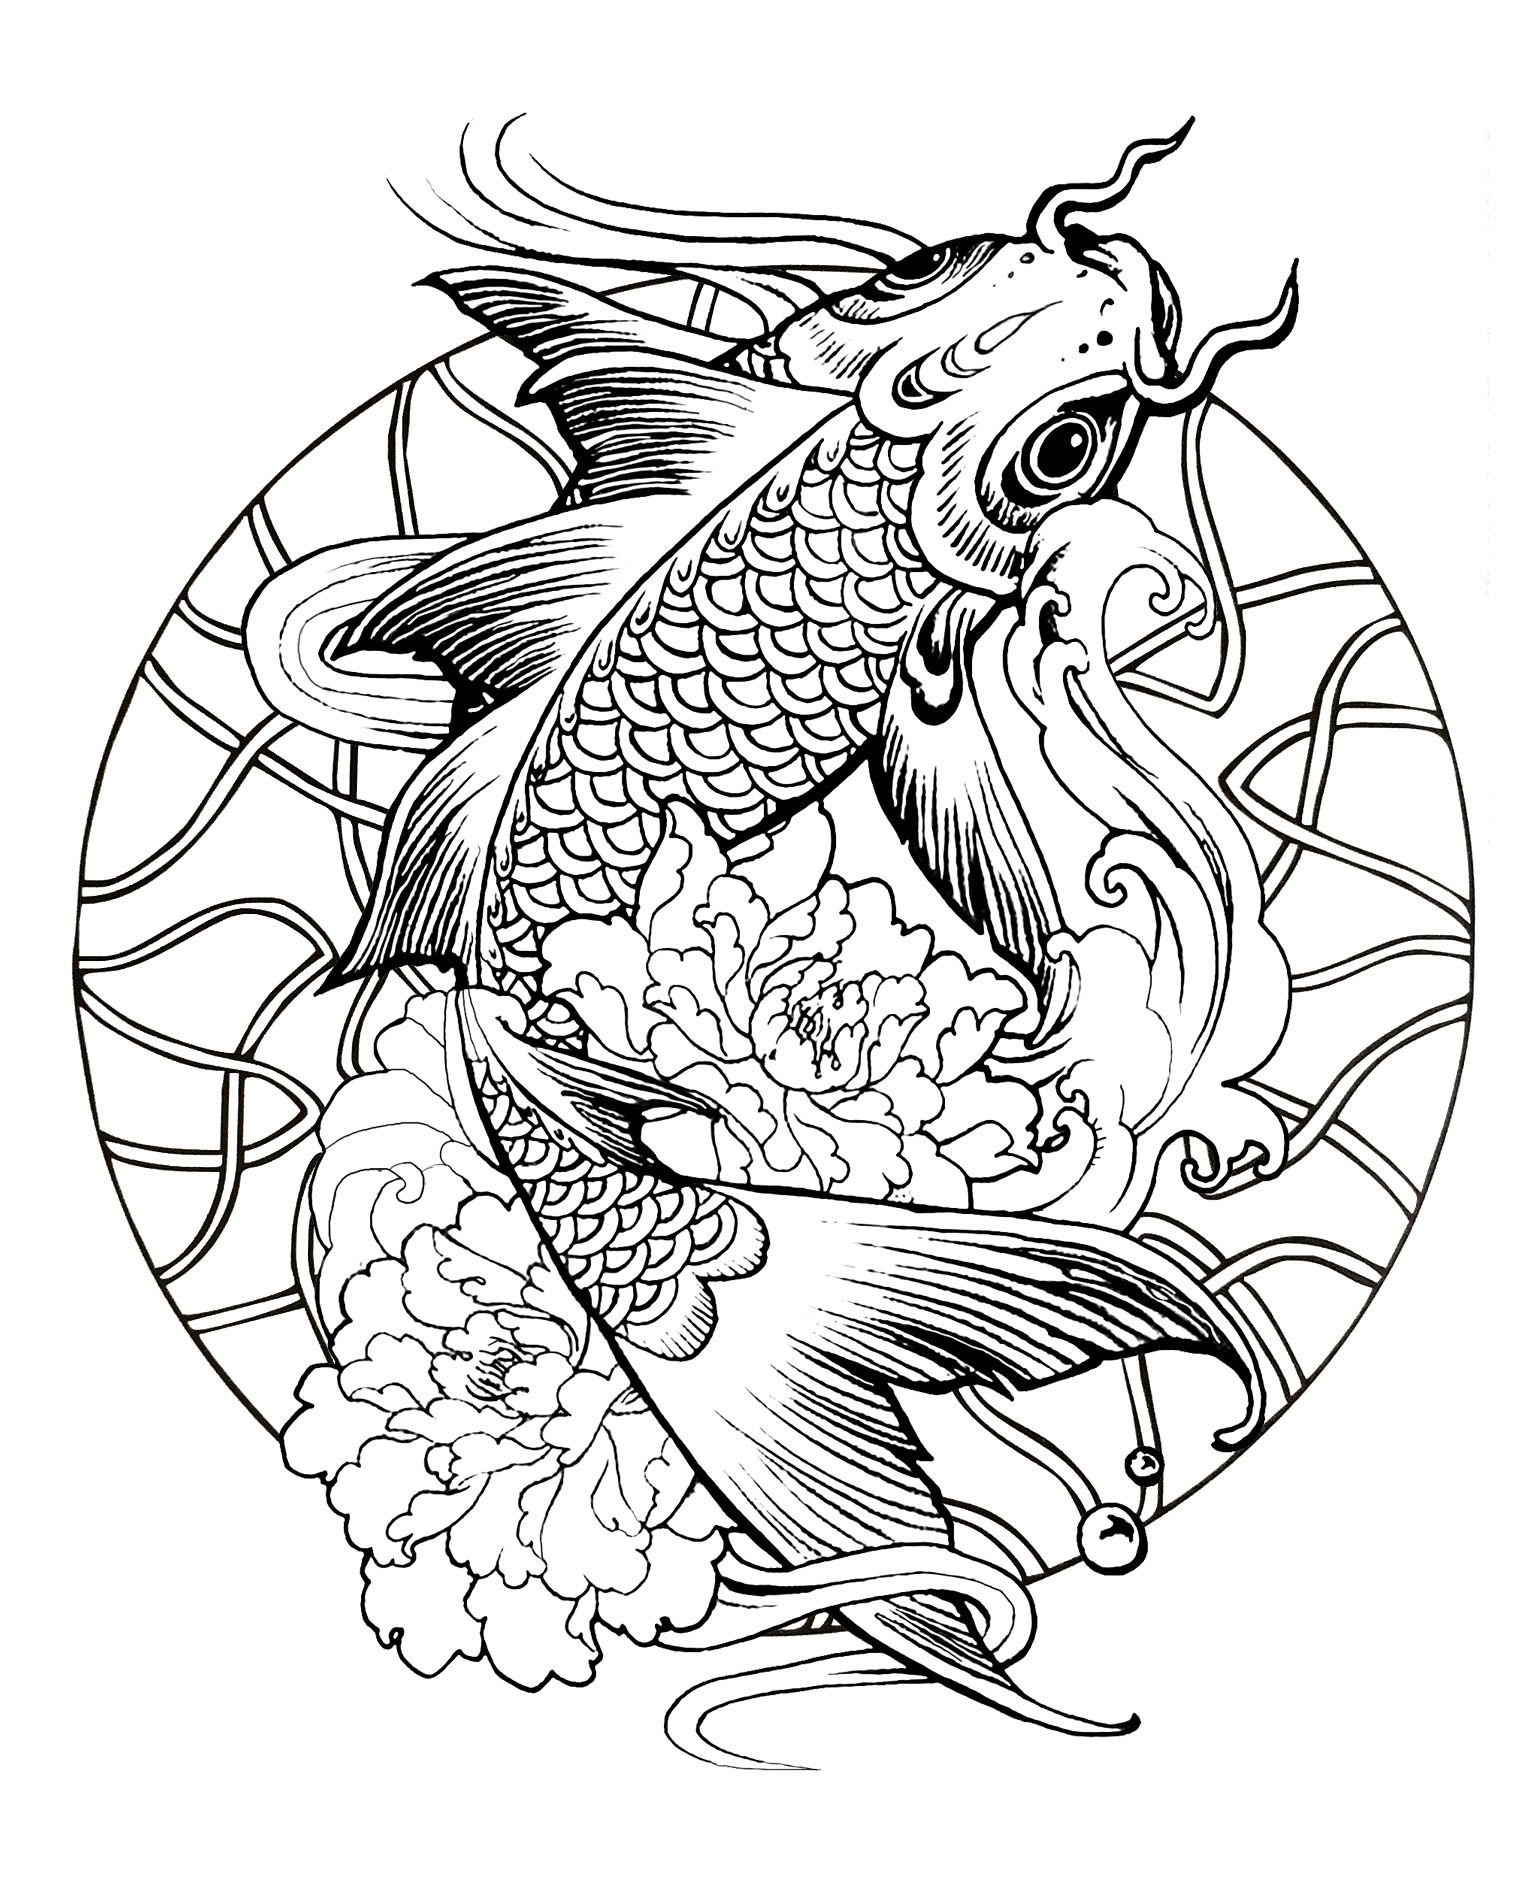 Coloriage Mandala De Poisson.Mandala Poisson Carpe Mandalas Coloriages Difficiles Pour Adultes